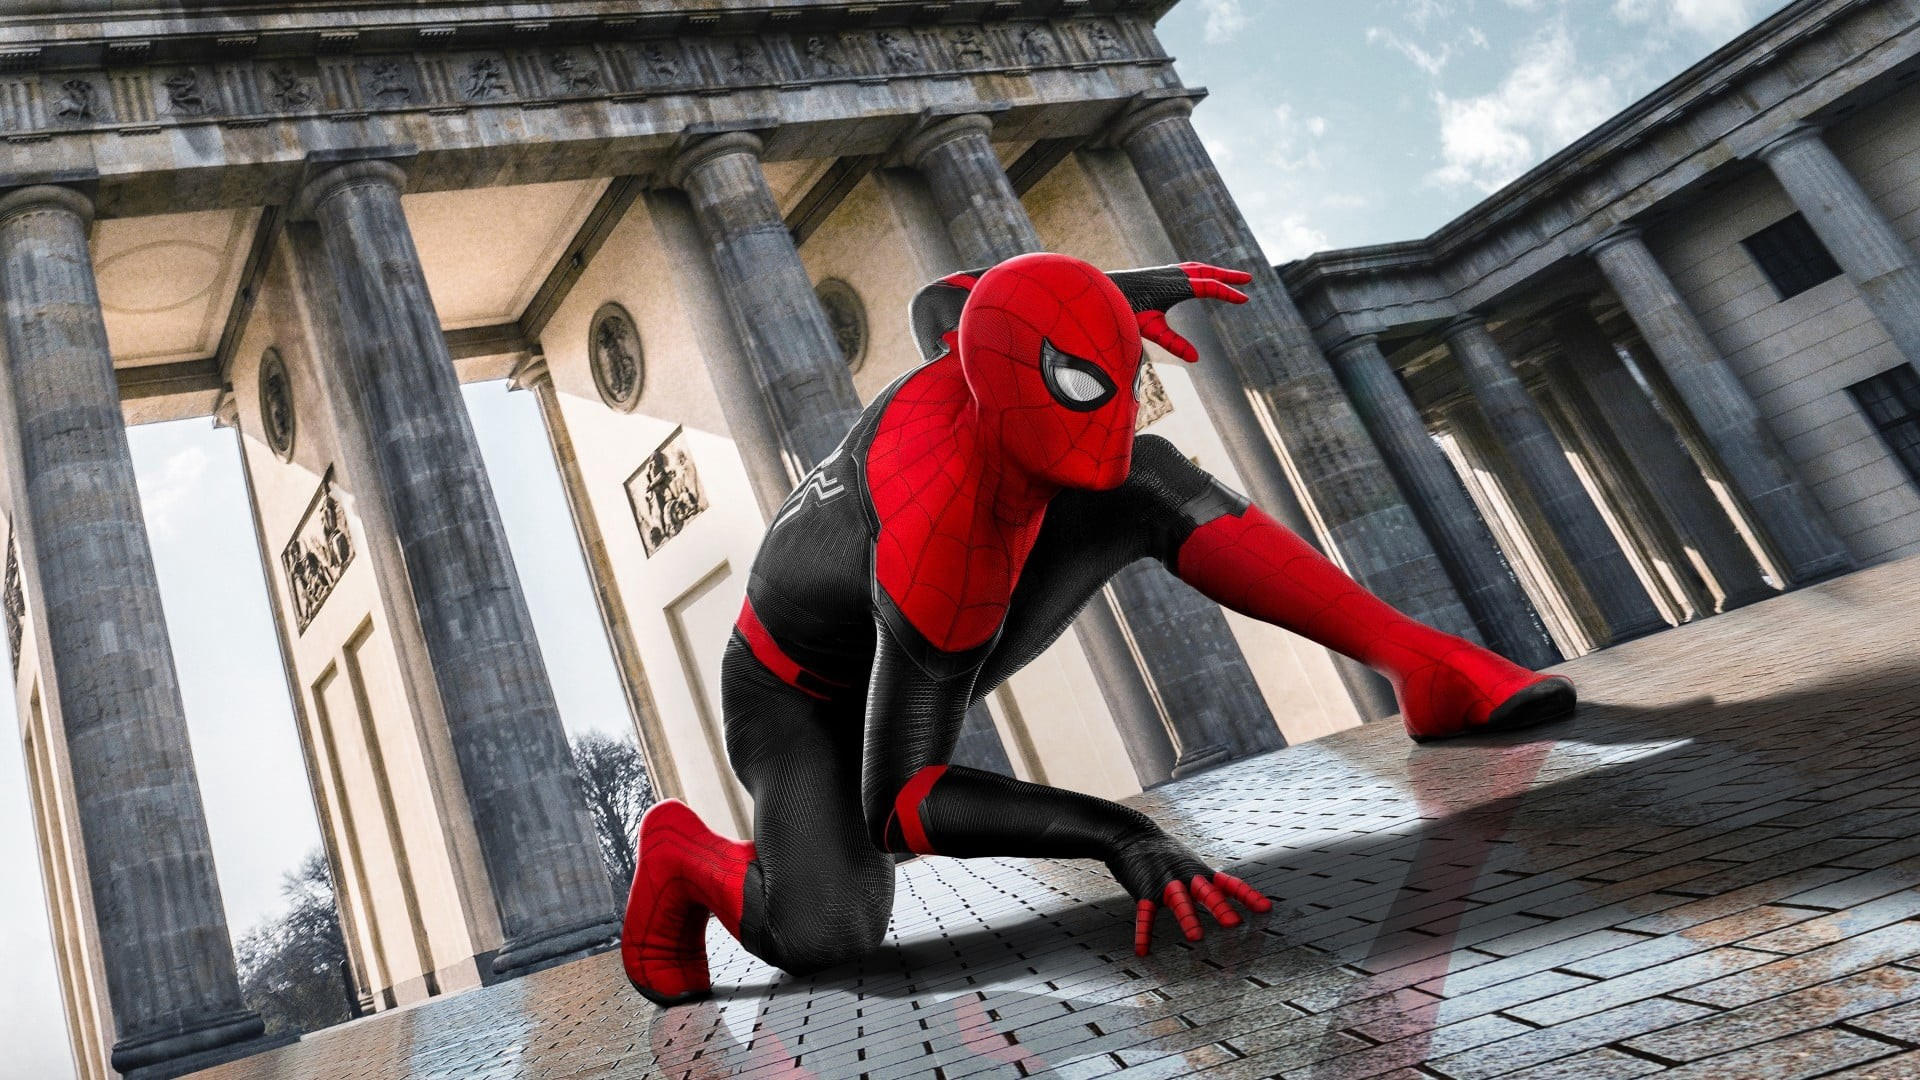 http://www.guardmovies.stream/movie/429617/spider-man-far-from-home.html